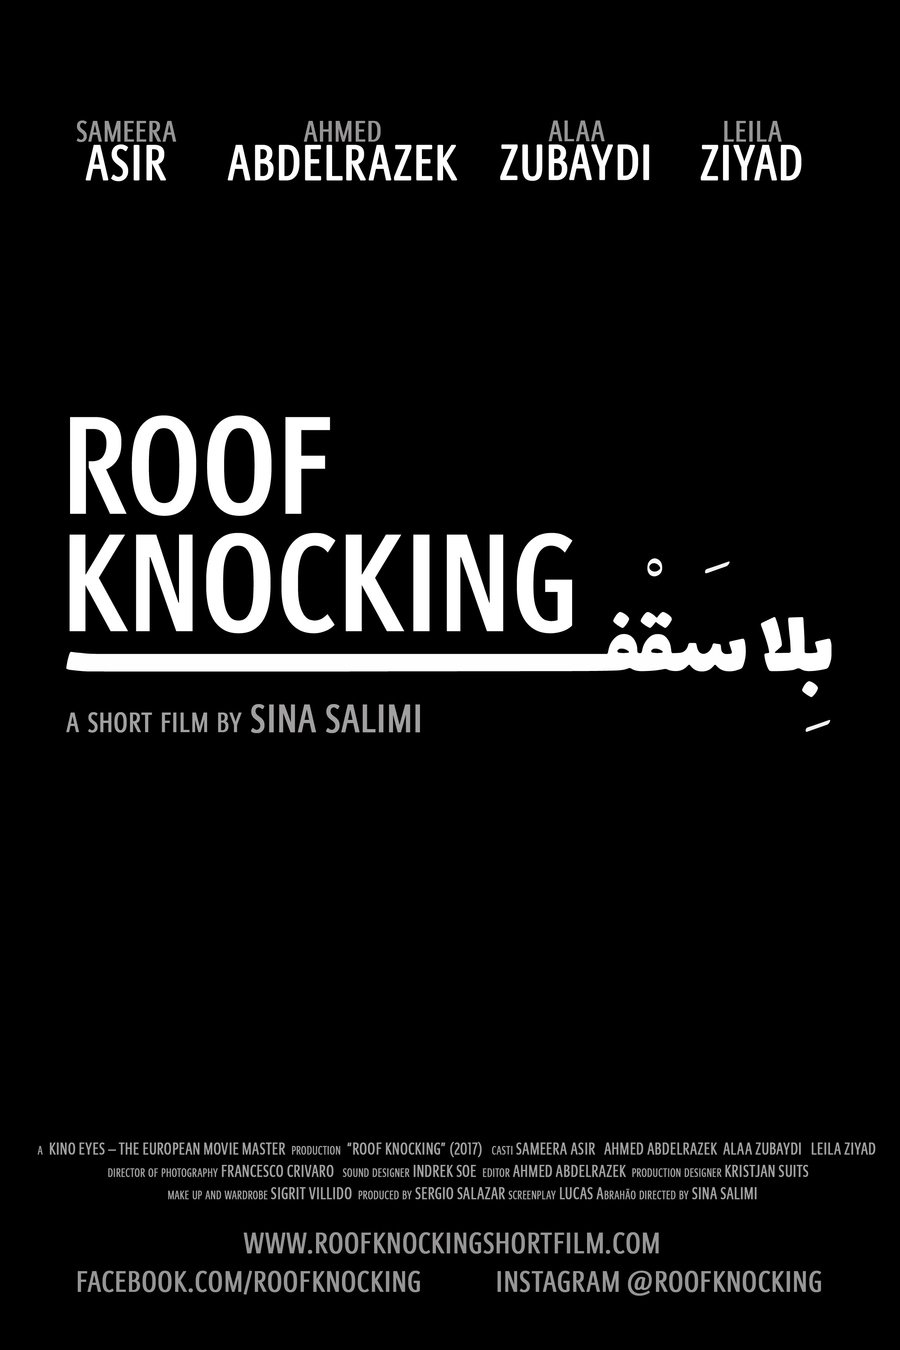 Roof knocking